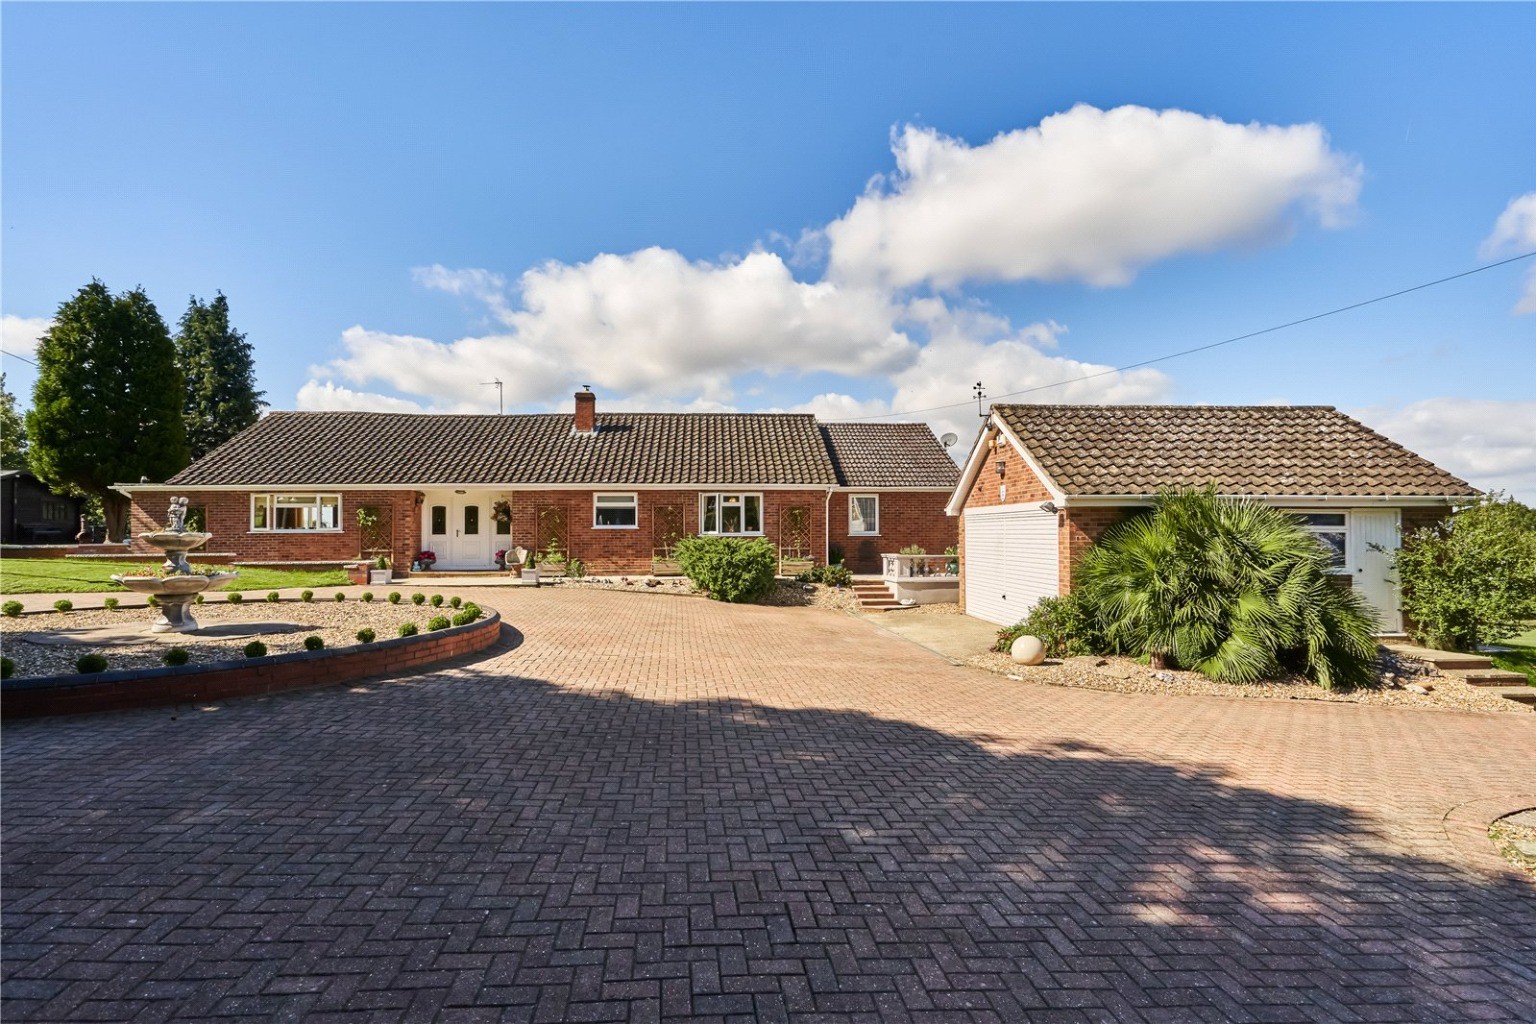 Set well back from the road, and wrapped in three acres of hugely versatile land, Lingdale sits in a very peaceful and private elevated position on Paxton Hill, with far reaching views over the surrounding countryside.